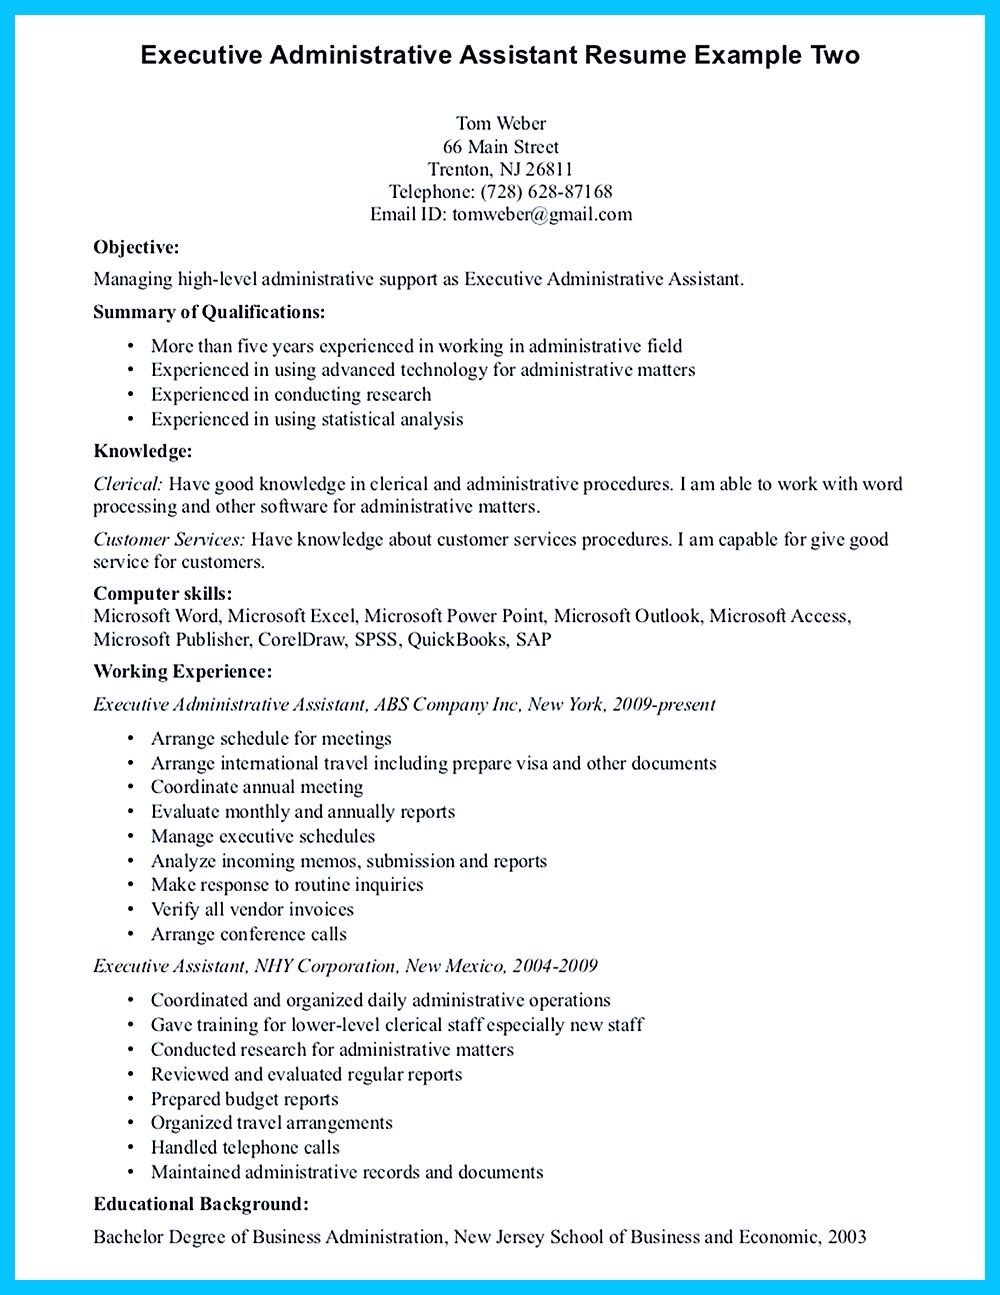 Executive Assistant Resume Samples In Writing Entry Level Administrative Assistant Resume You Need